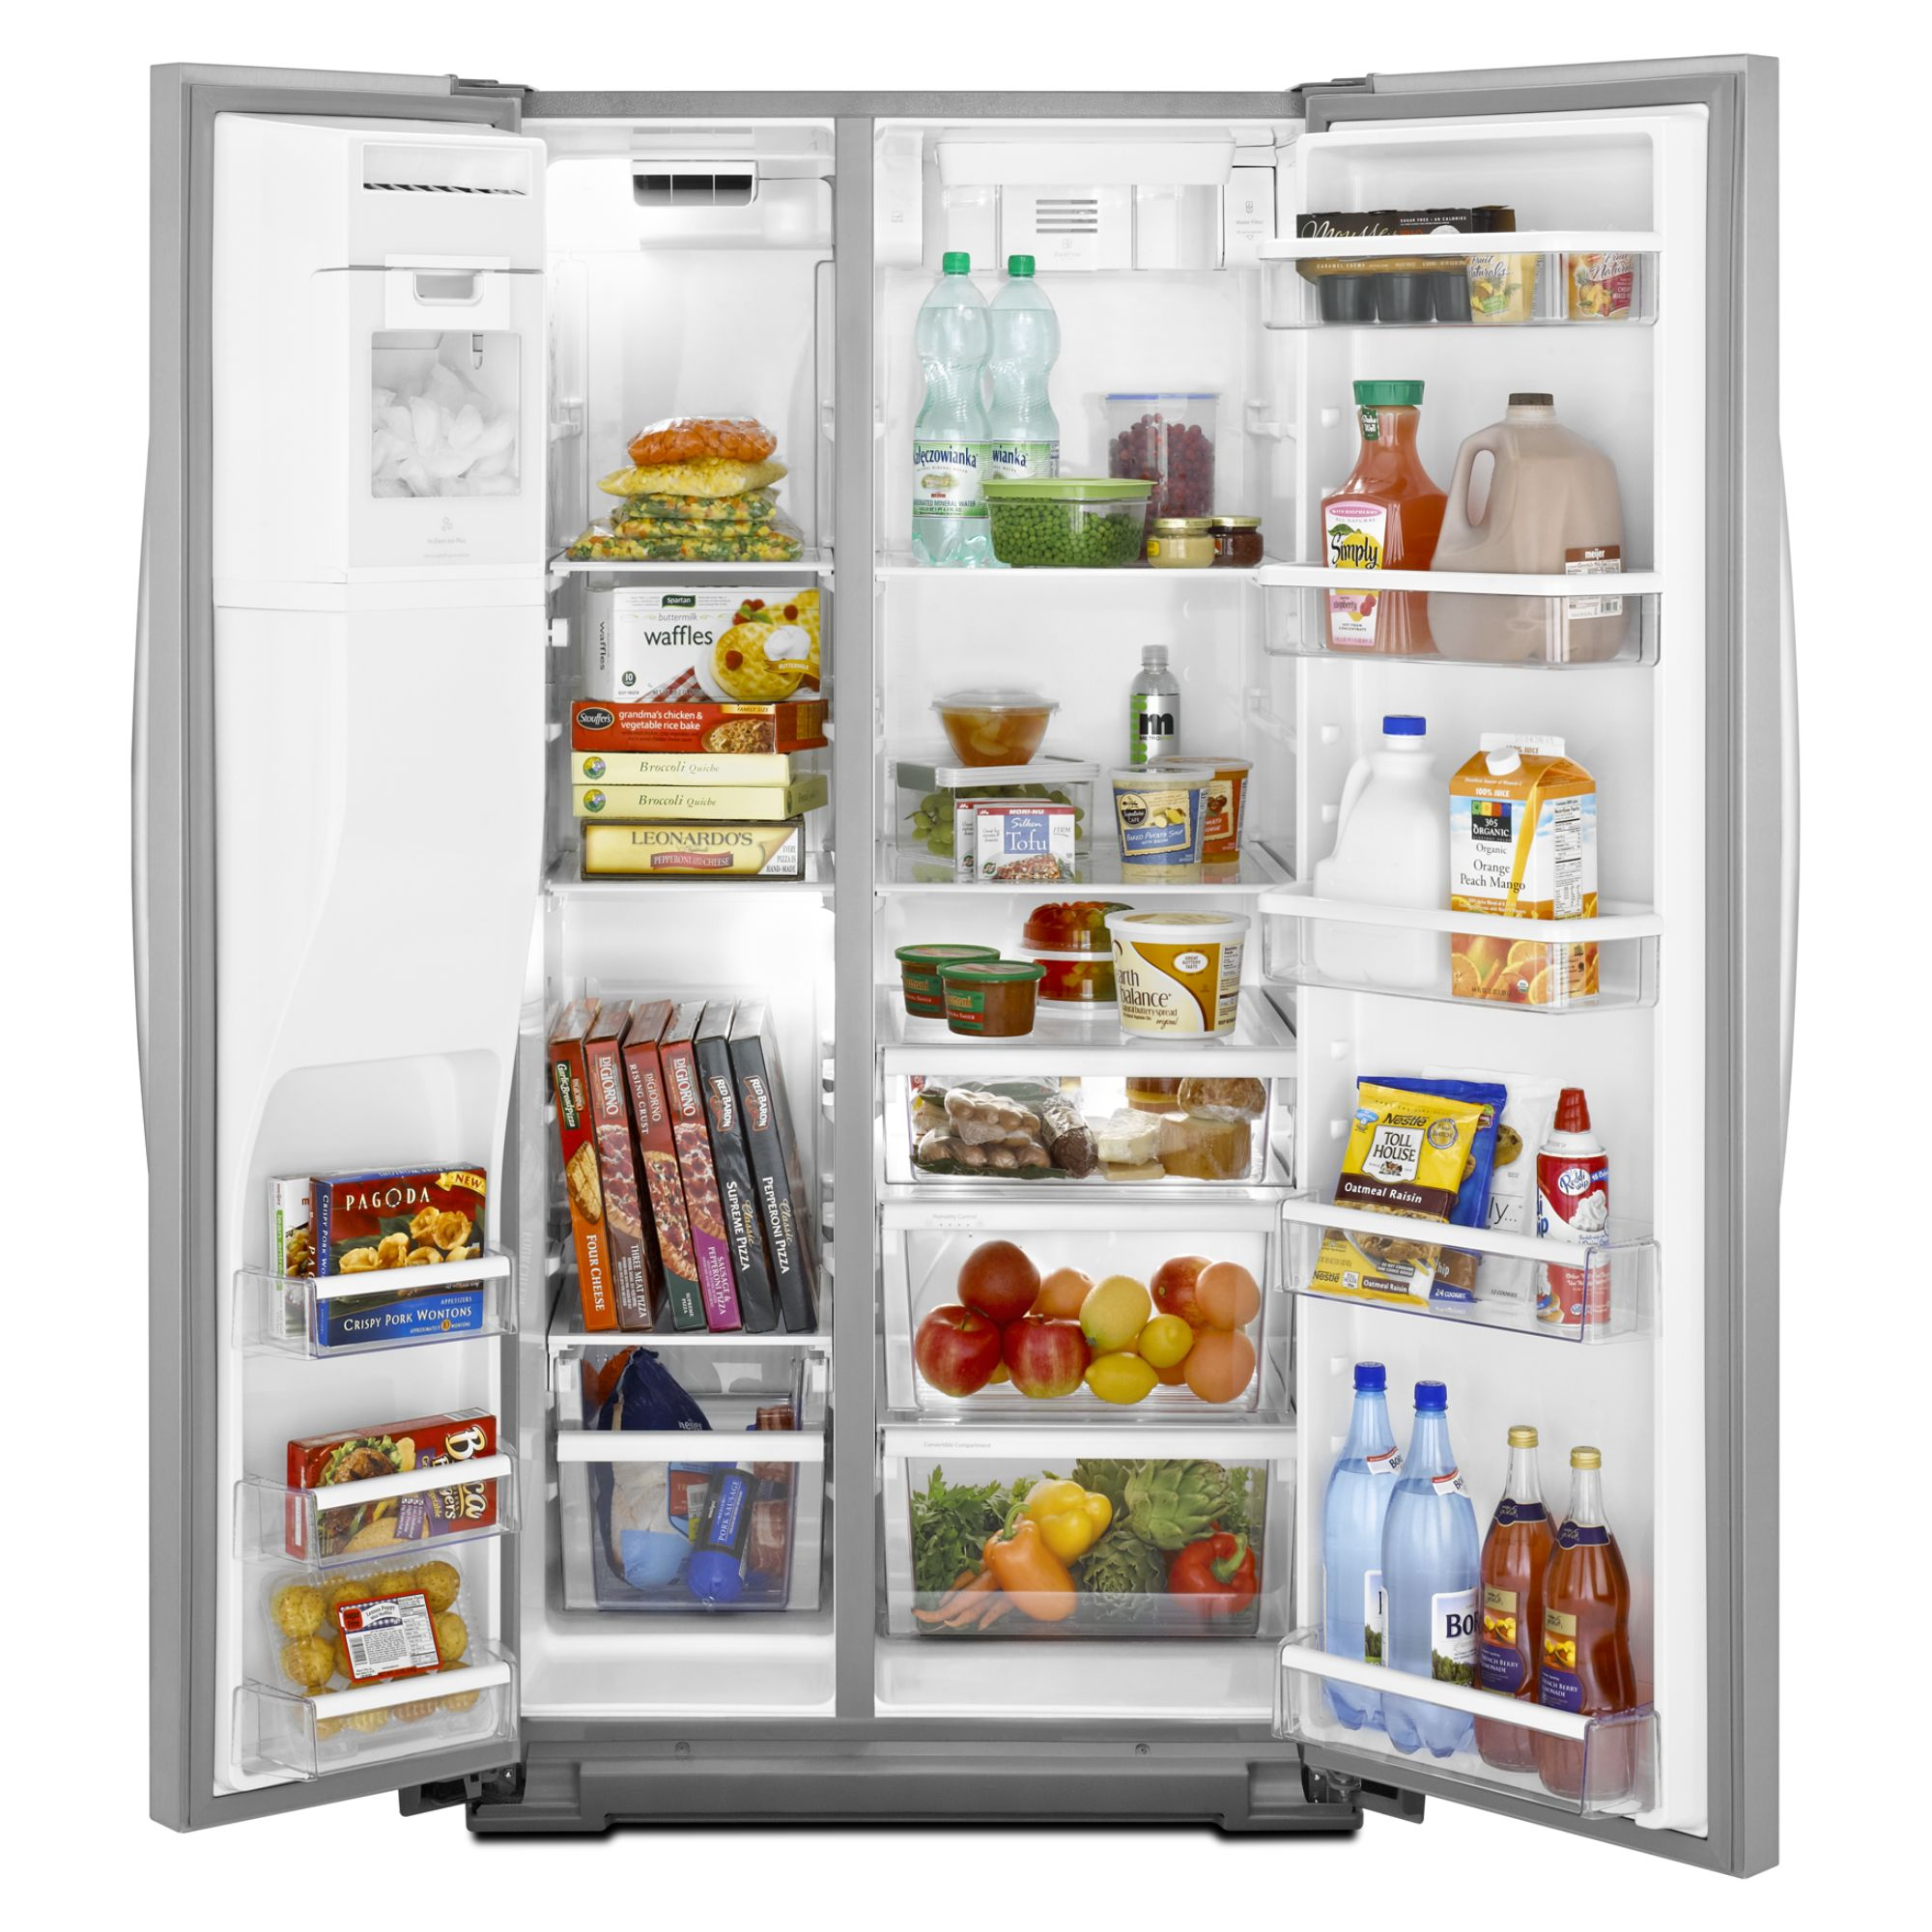 Whirlpool 26.4 cu. ft. Side-by-Side Refrigerator w/ In-Door-Ice® Plus System - White